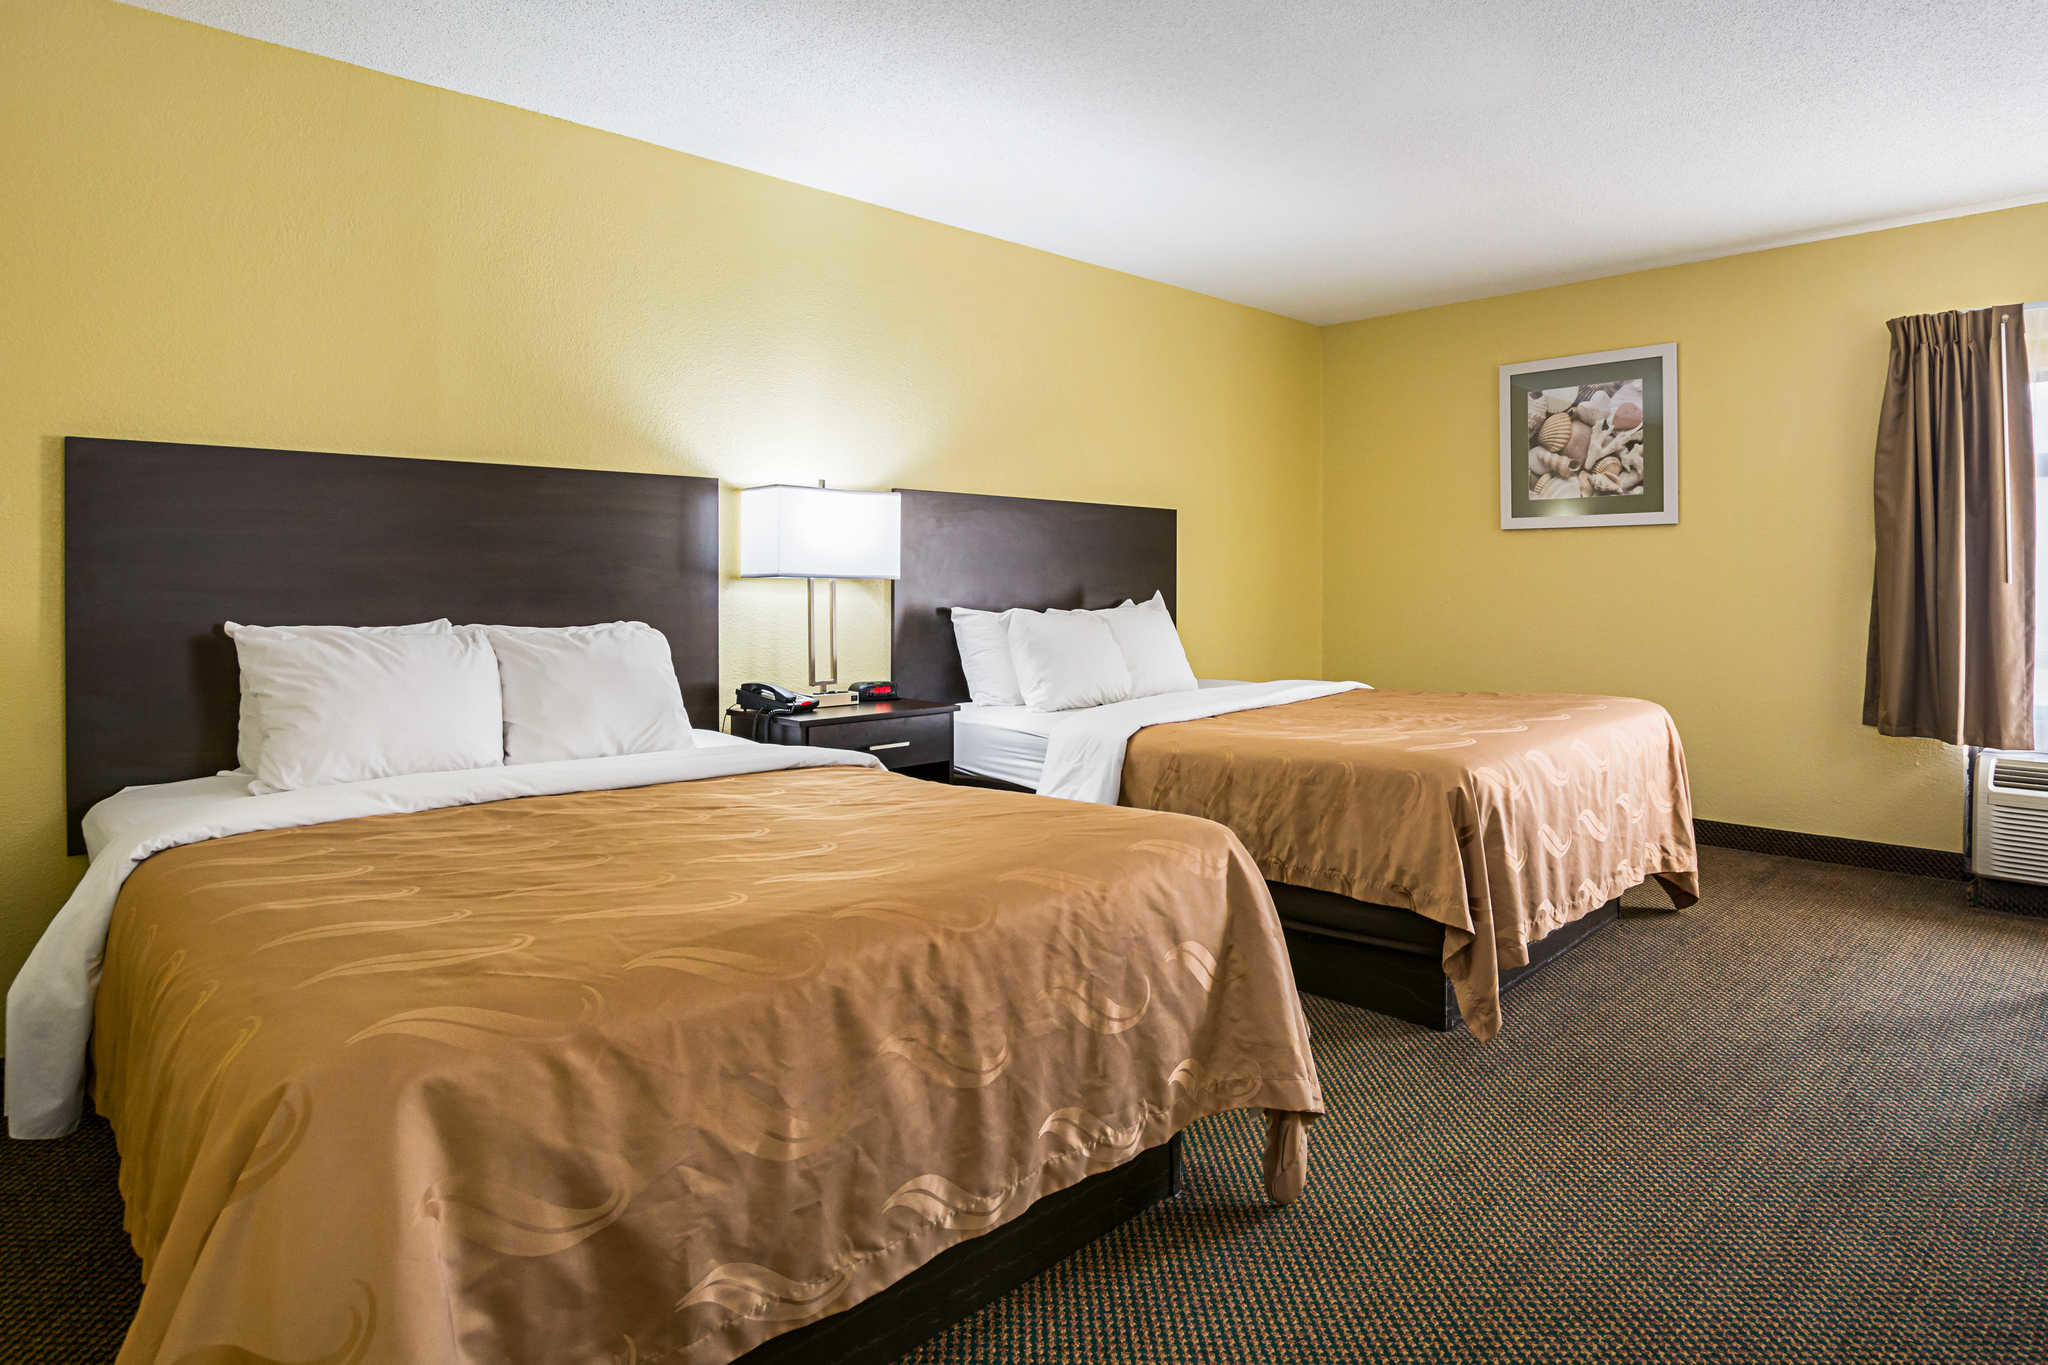 Quality Inn & Suites Greensburg I-74 image 9